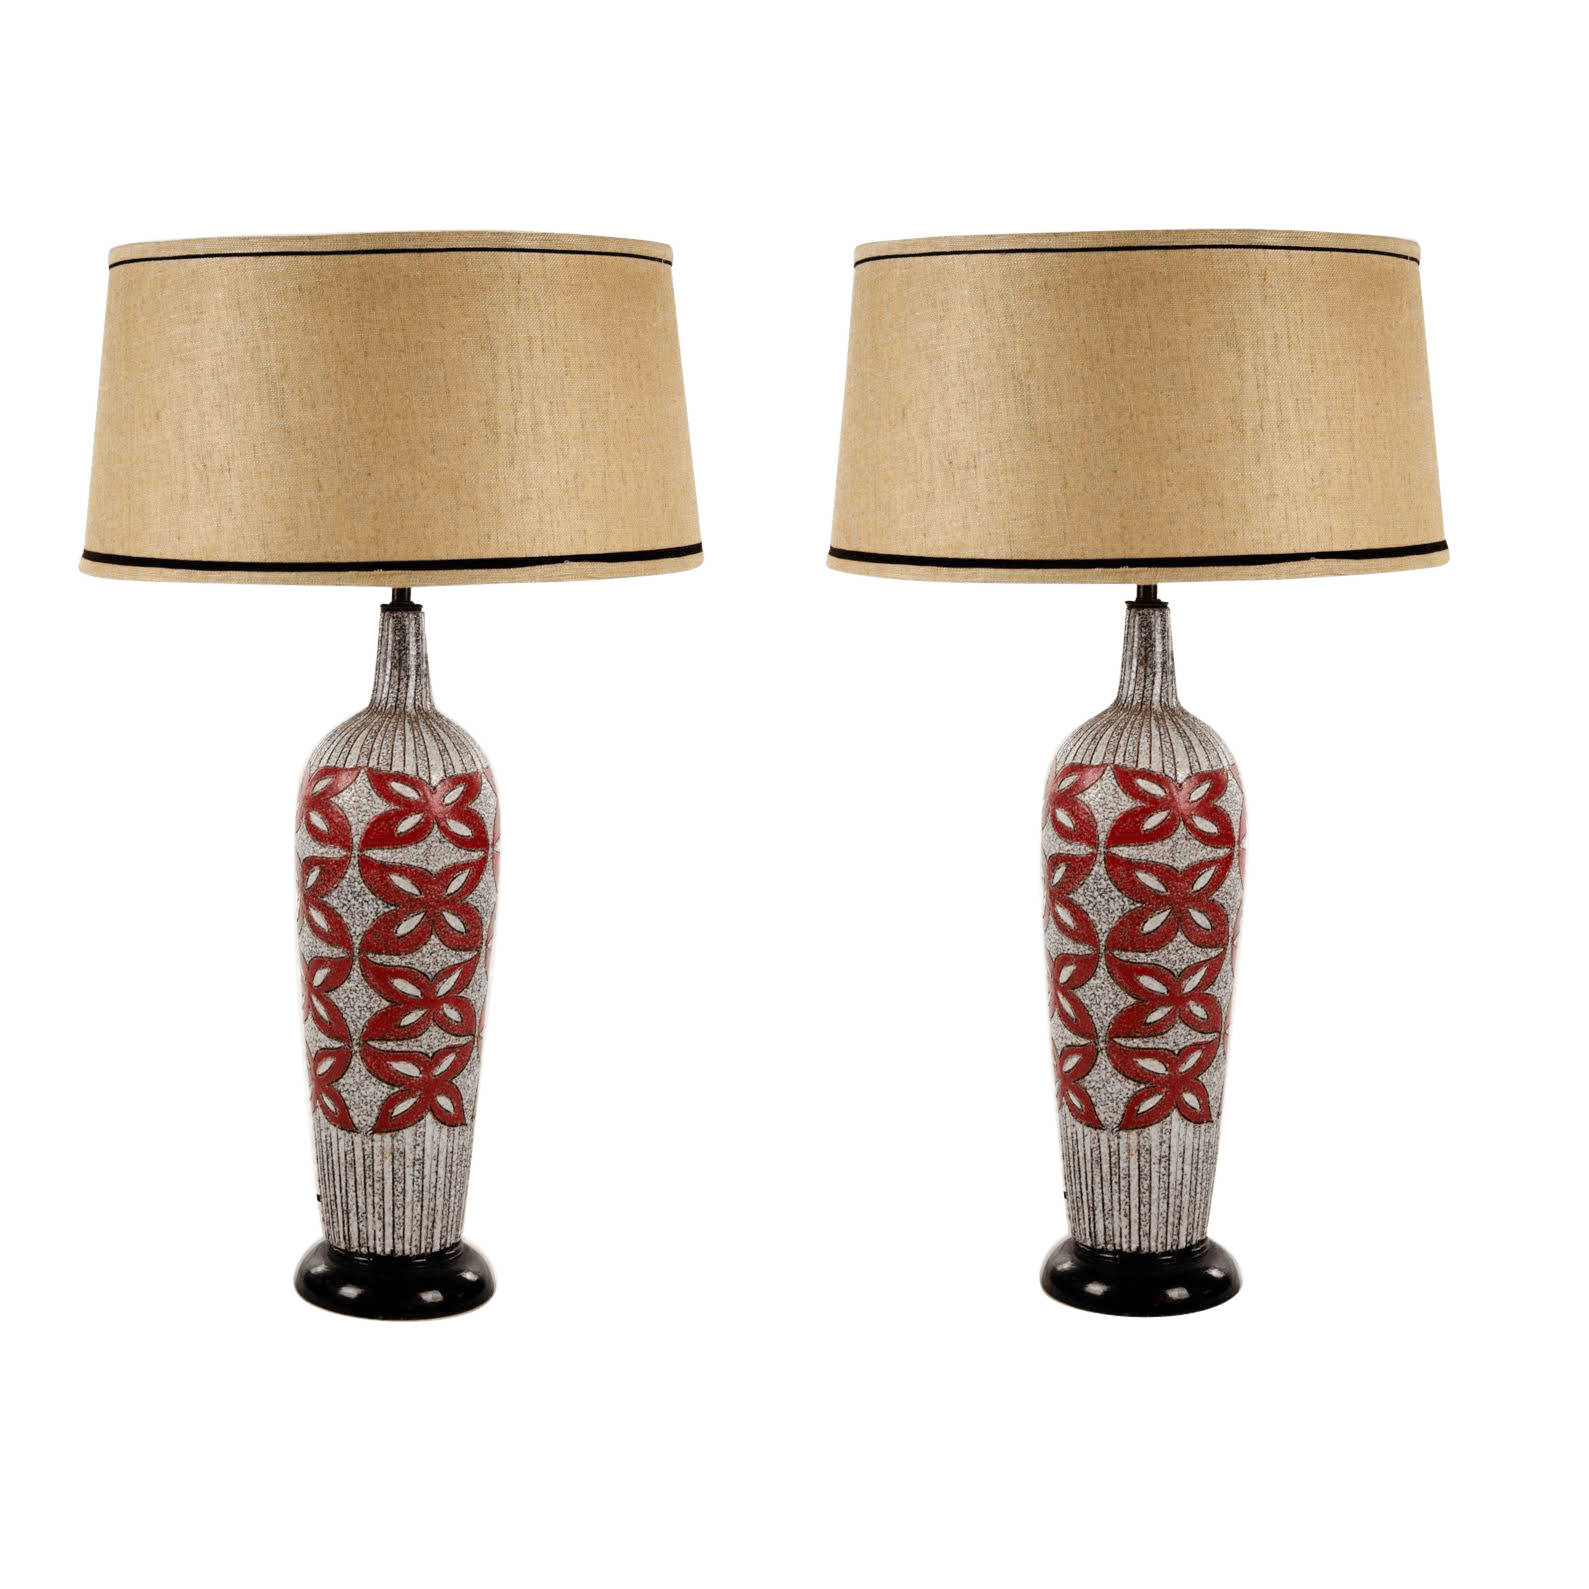 Funky Desk Lamps 1960s Mid Century Modern Textured Pottery Table Lamps A Pair